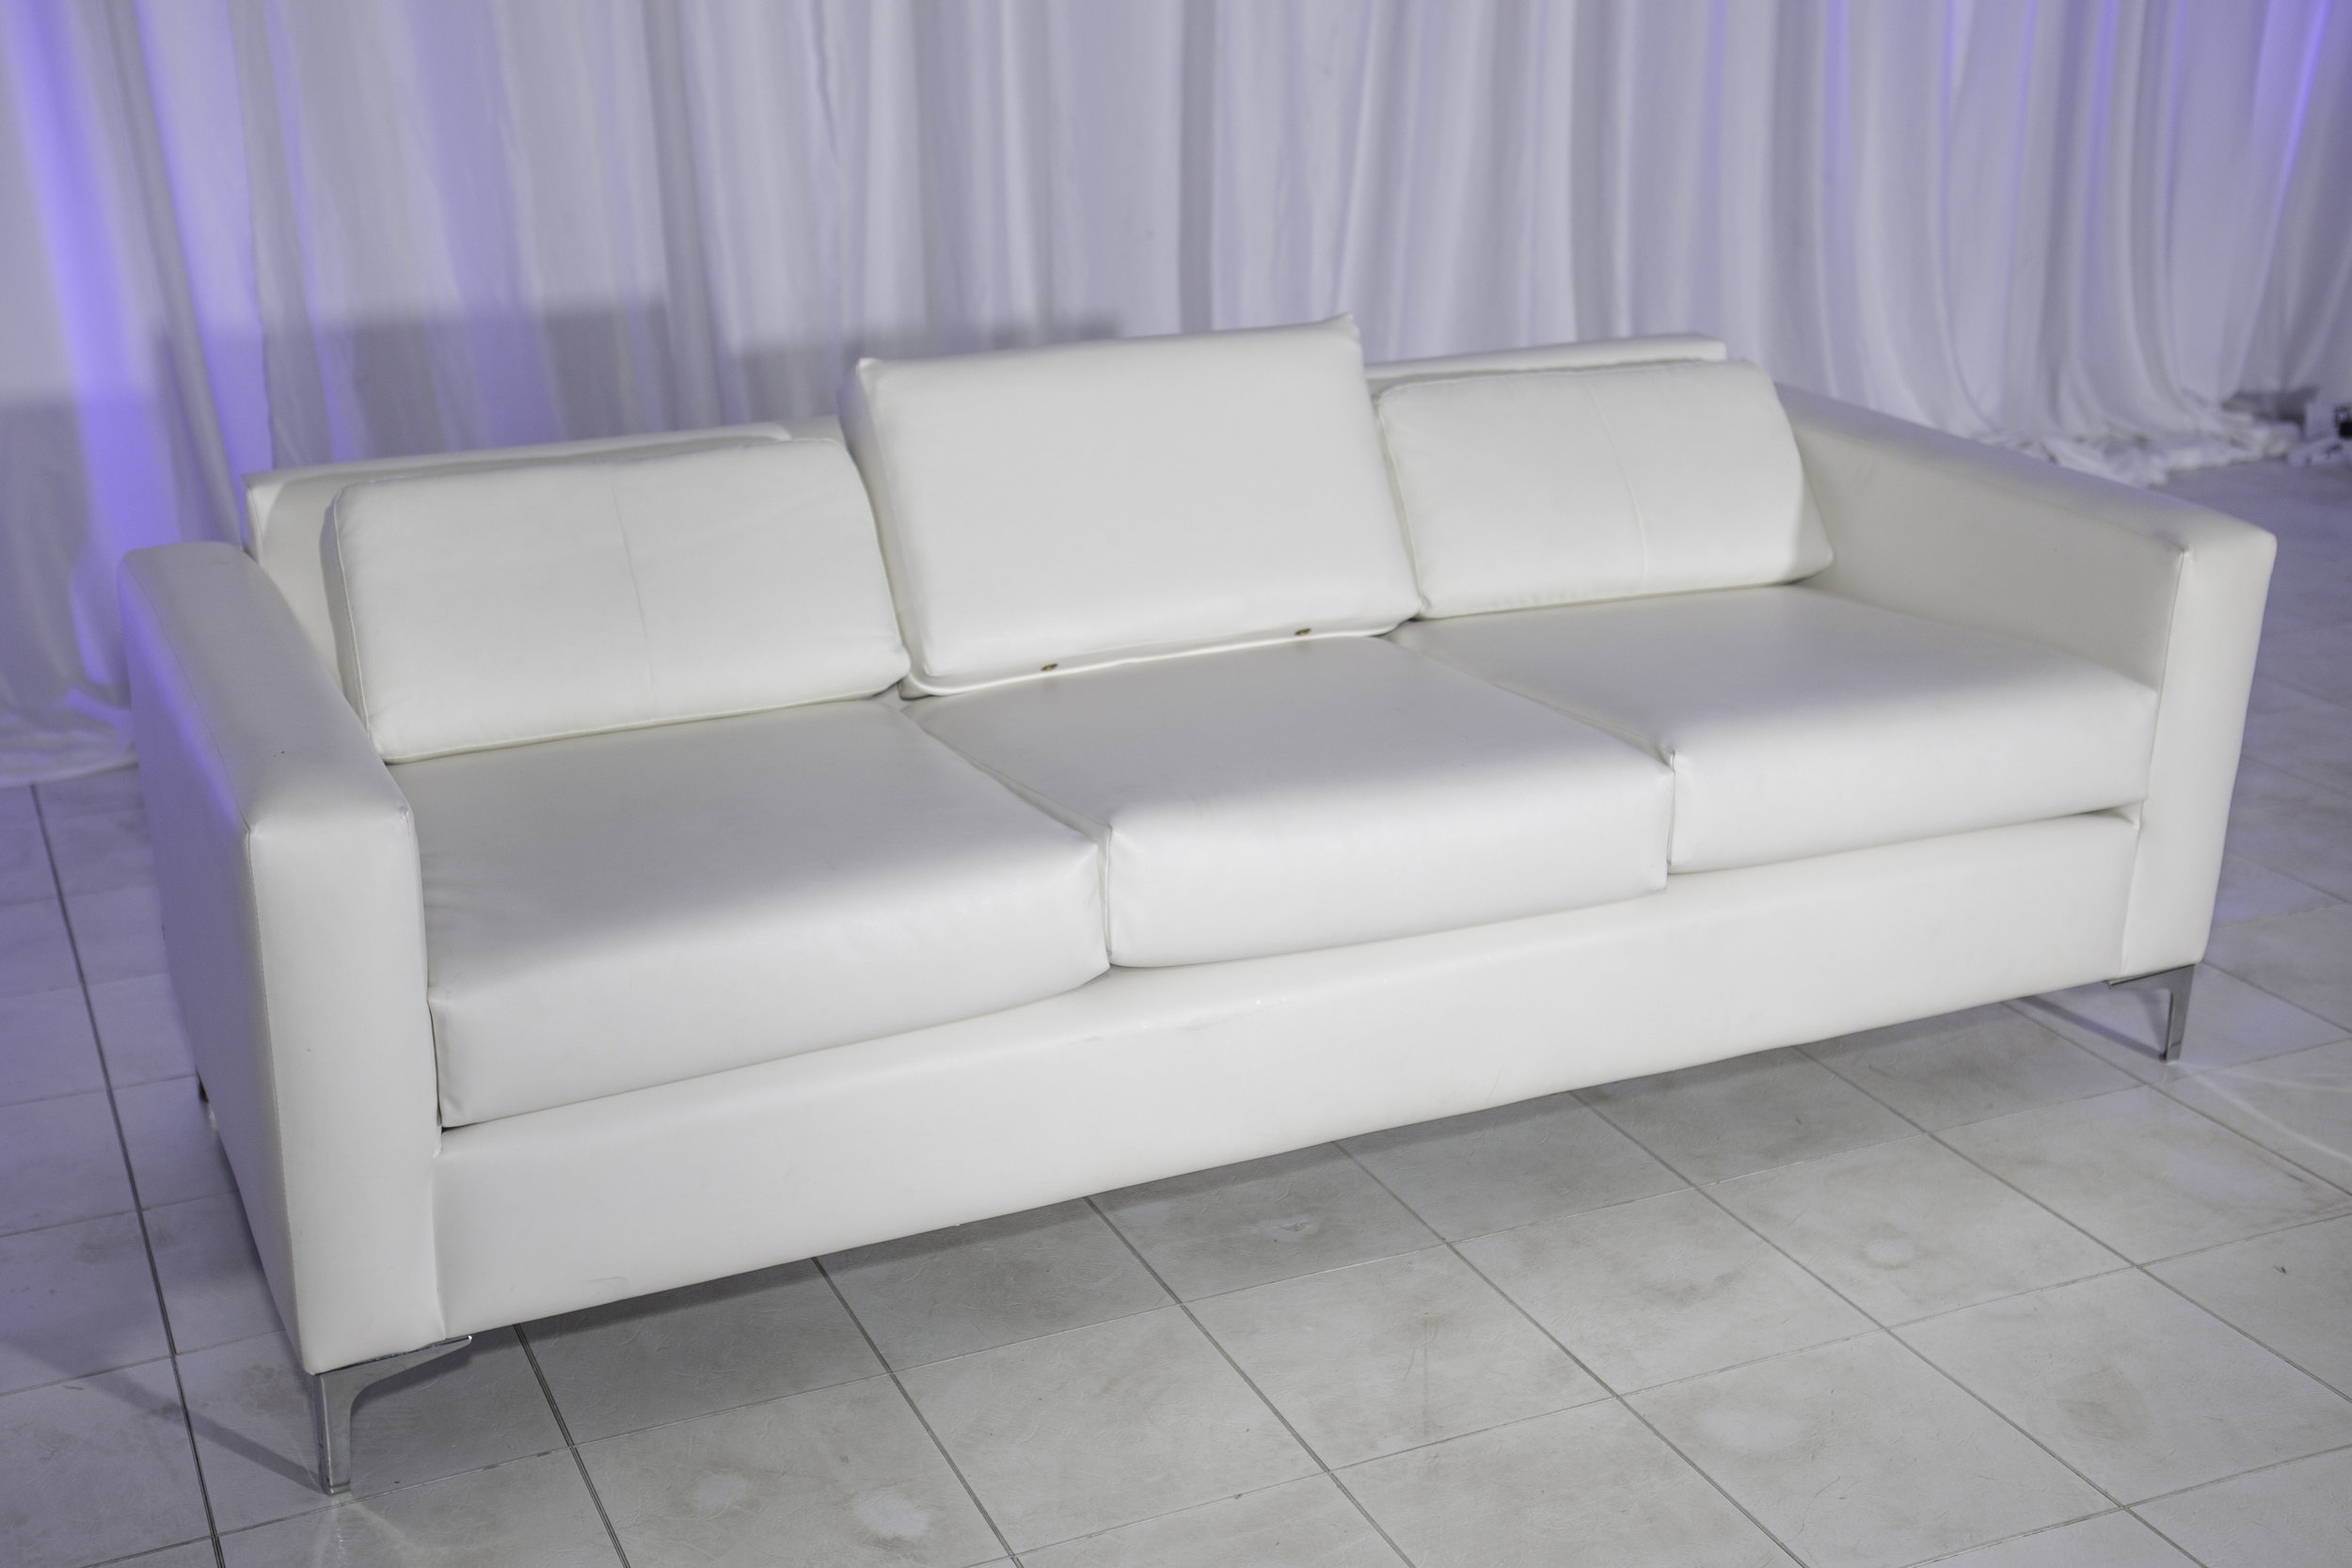 Sofa- Miami White Leather Sofa_1.jpg